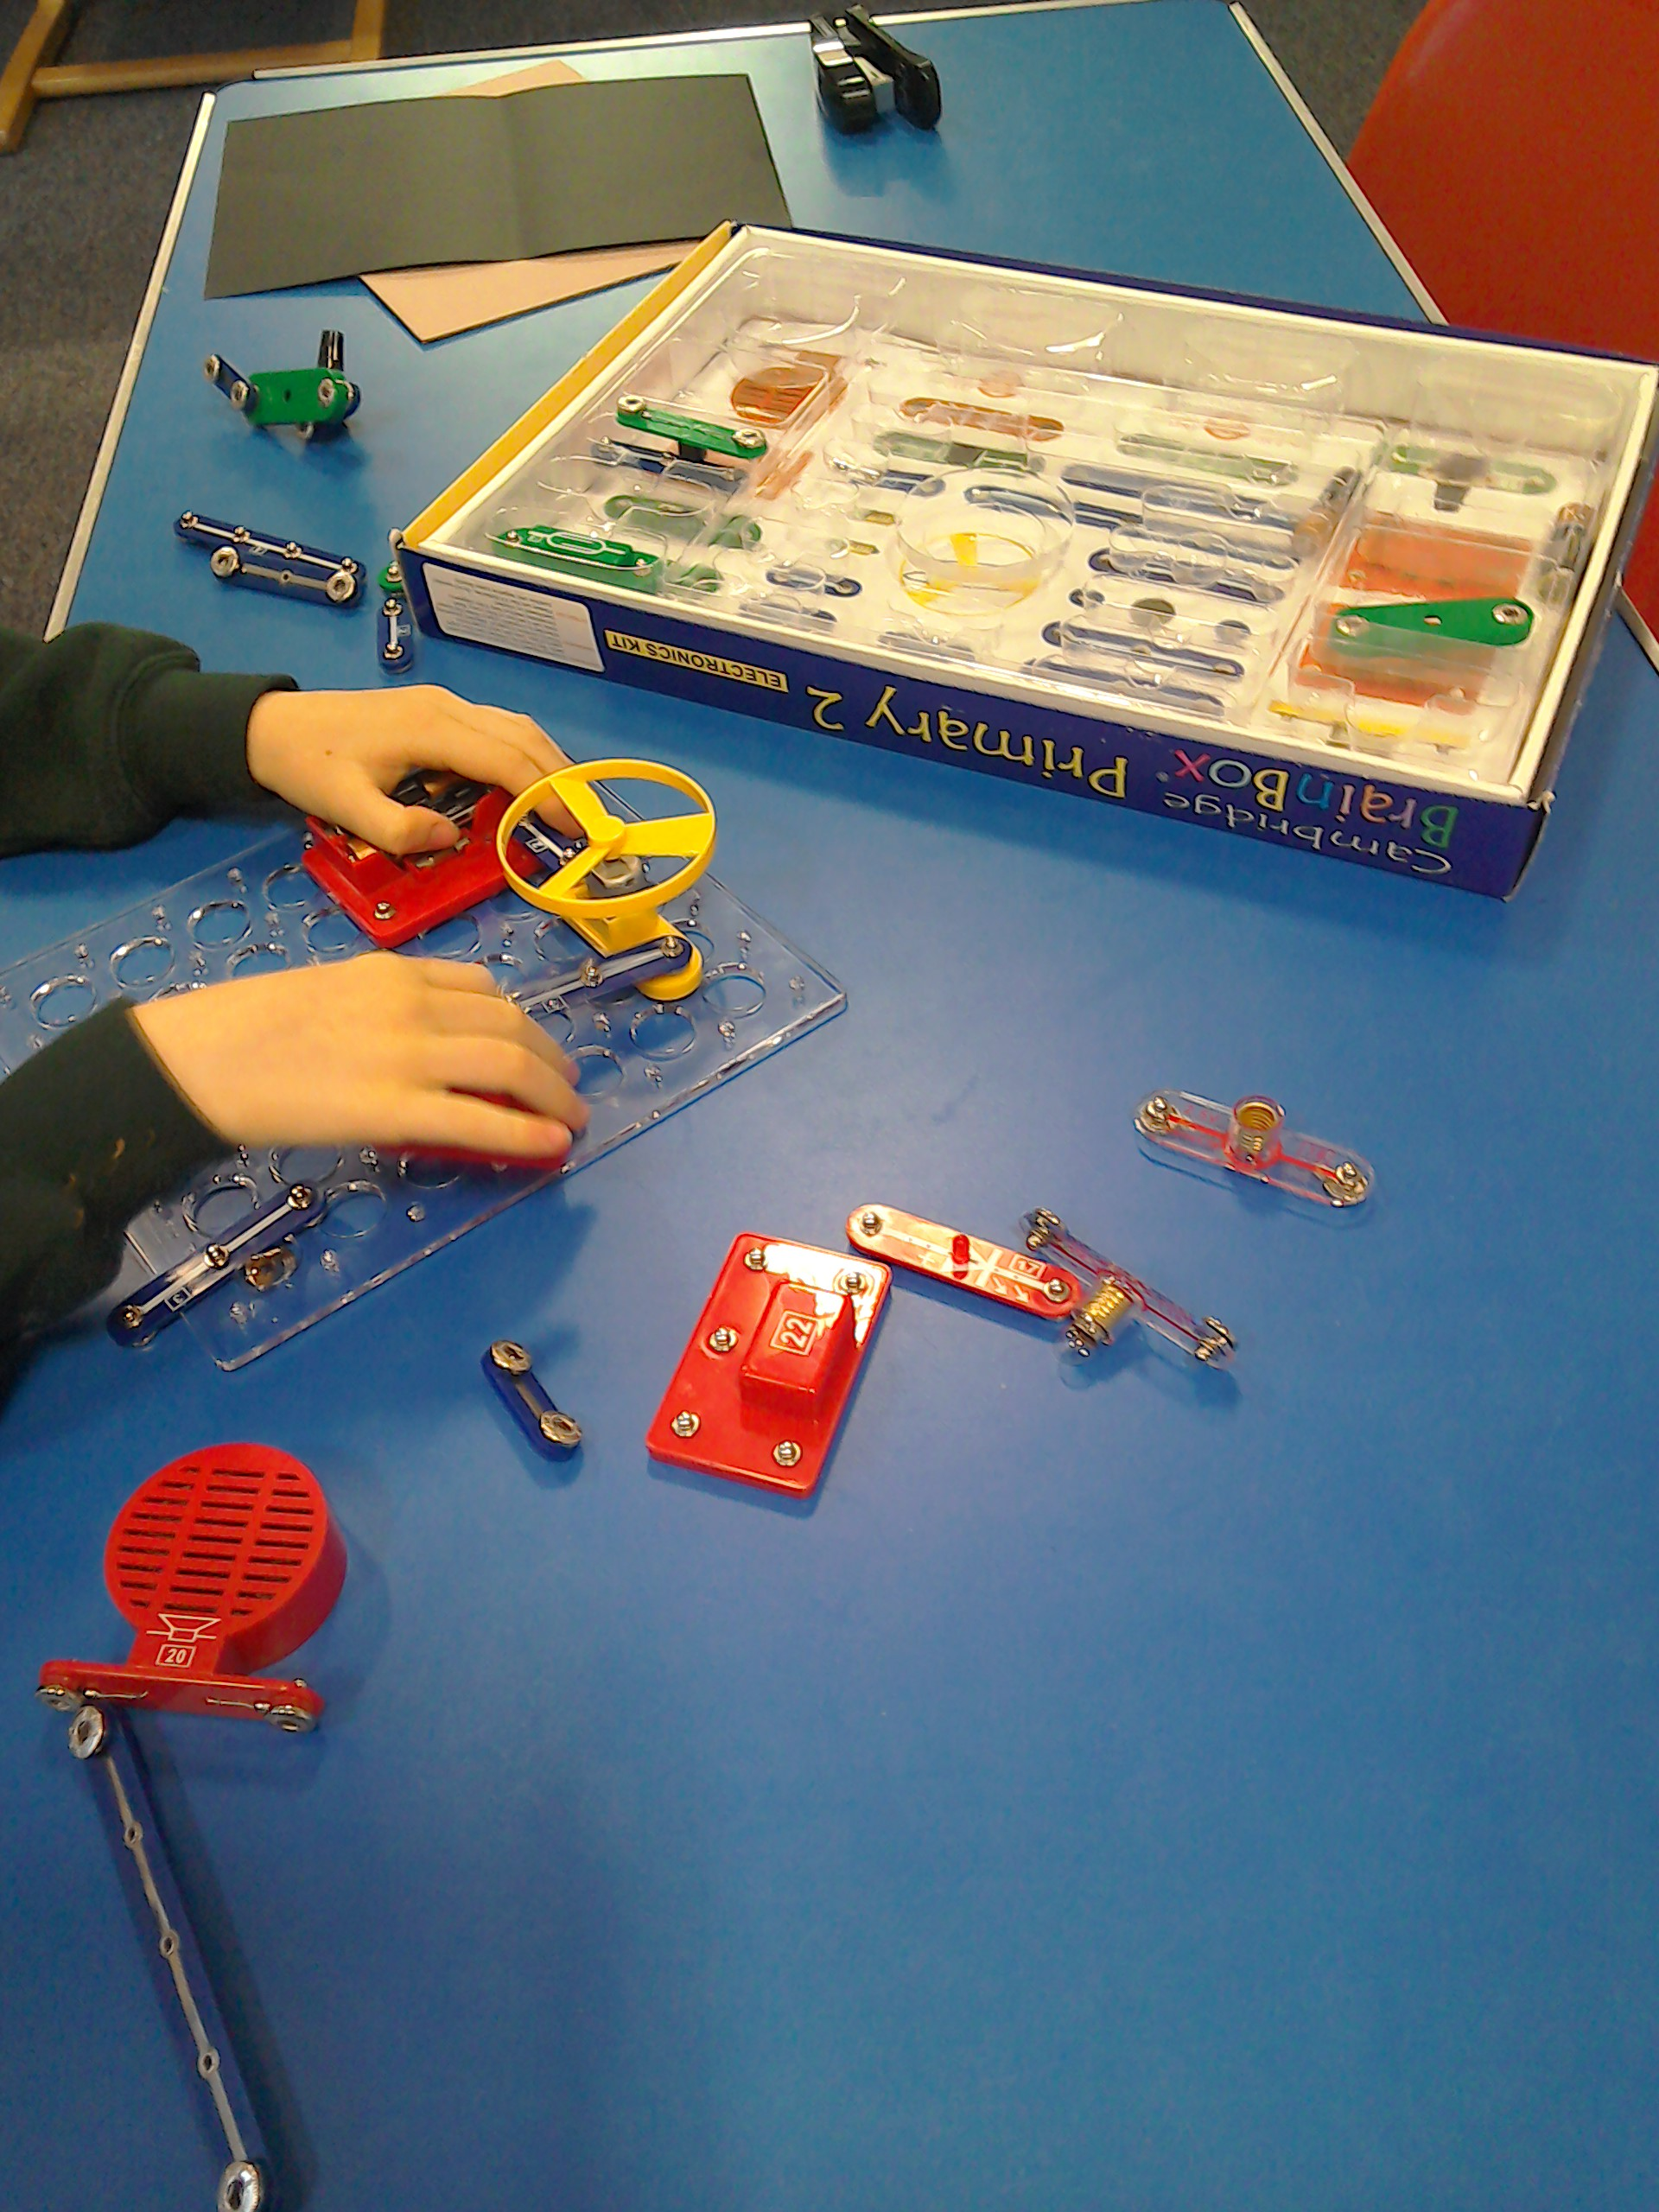 Today we are making electrical circuits, banana muffins and